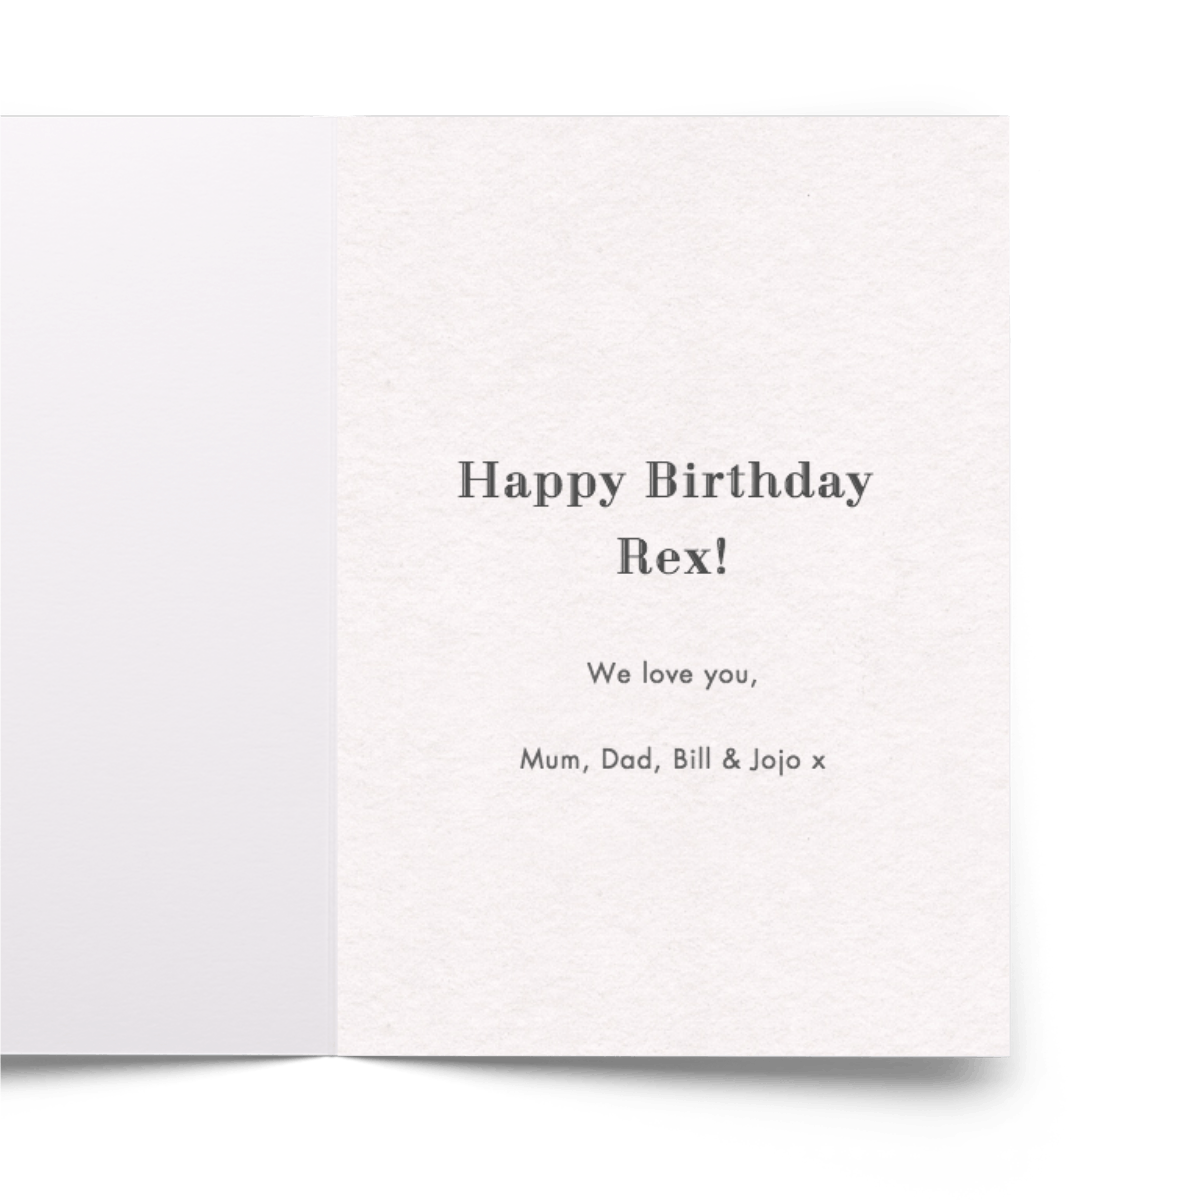 Https%3a%2f%2fwww.papier.com%2fproduct image%2f2078%2f19%2fportrait birthday 576 interieur 1453910151.png?ixlib=rb 1.1